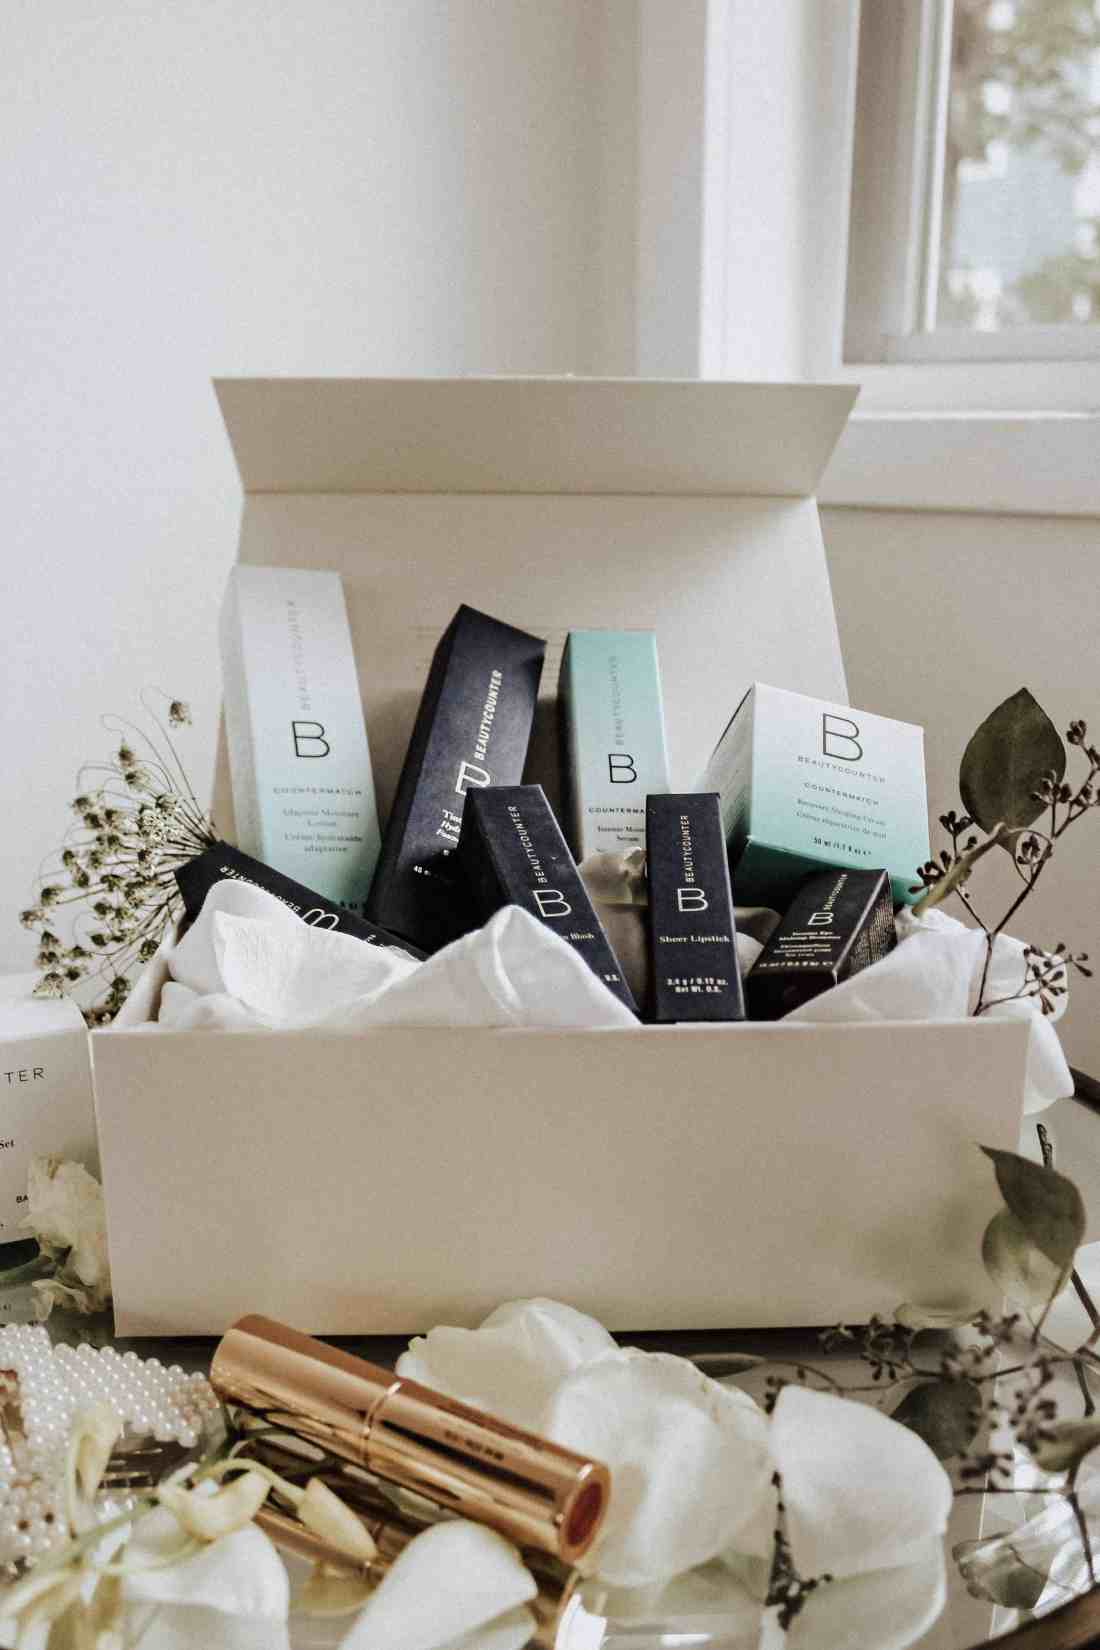 Sharing my honest experience trying & using Beautycounter products for the first time, including the Countermatch skincare line, makeup, masks, & more!